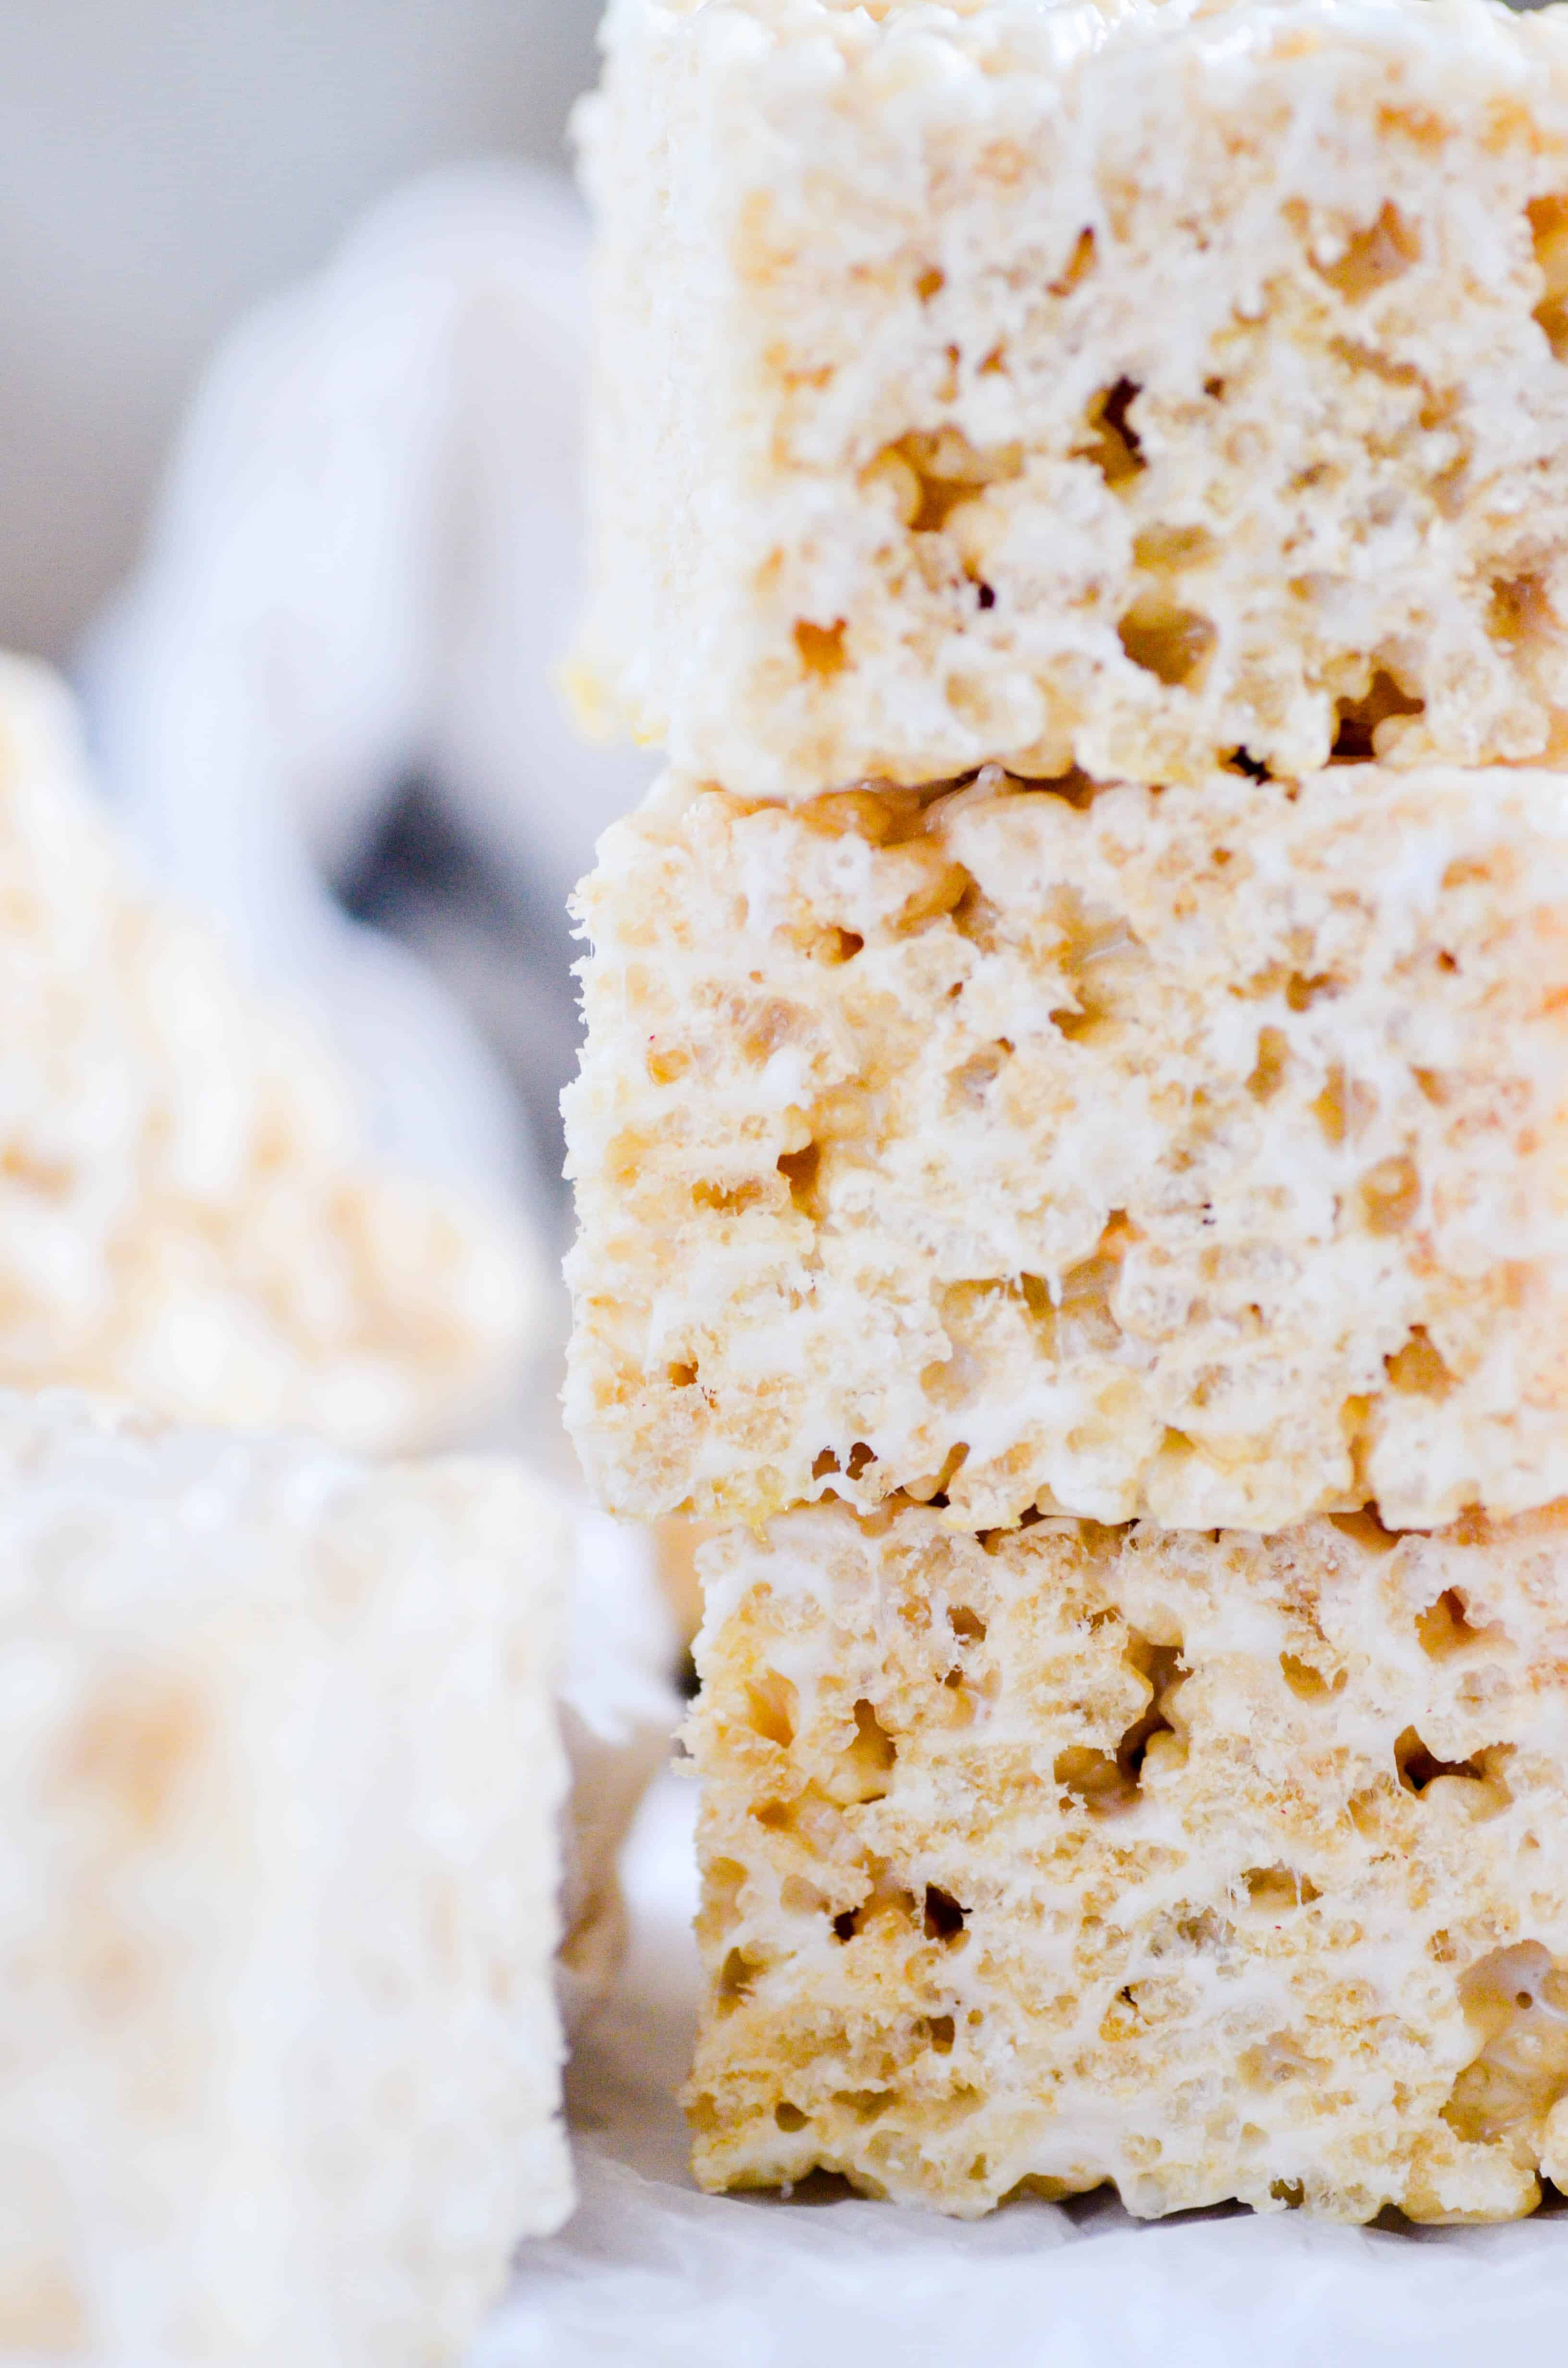 Everyone needs a recipe for the Perfect Rice Krispie treats in their back pocket! This one is my very favorite.